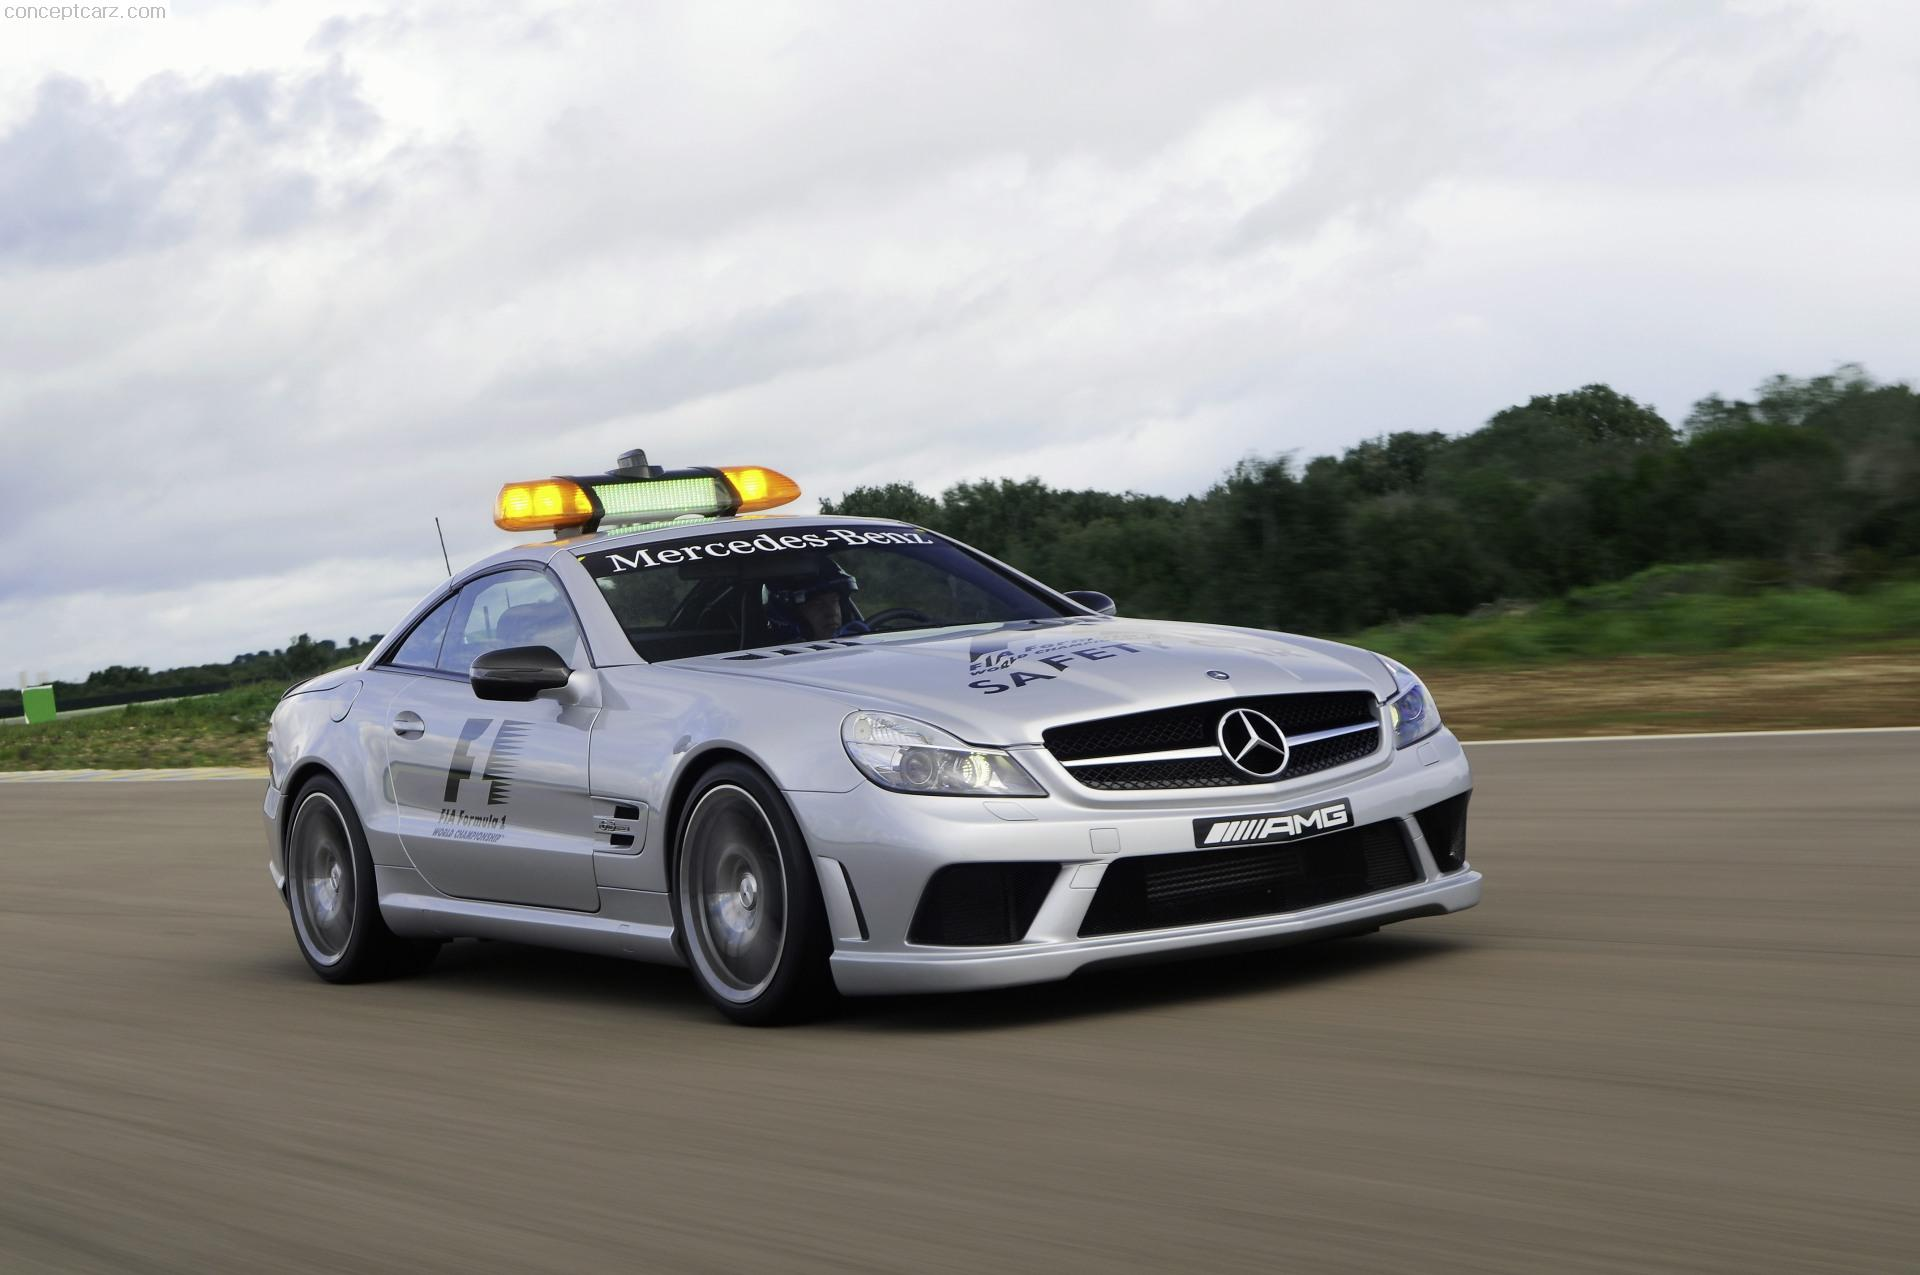 2009 mercedes benz sl 63 amg f1 safety car for Mercedes benz safety